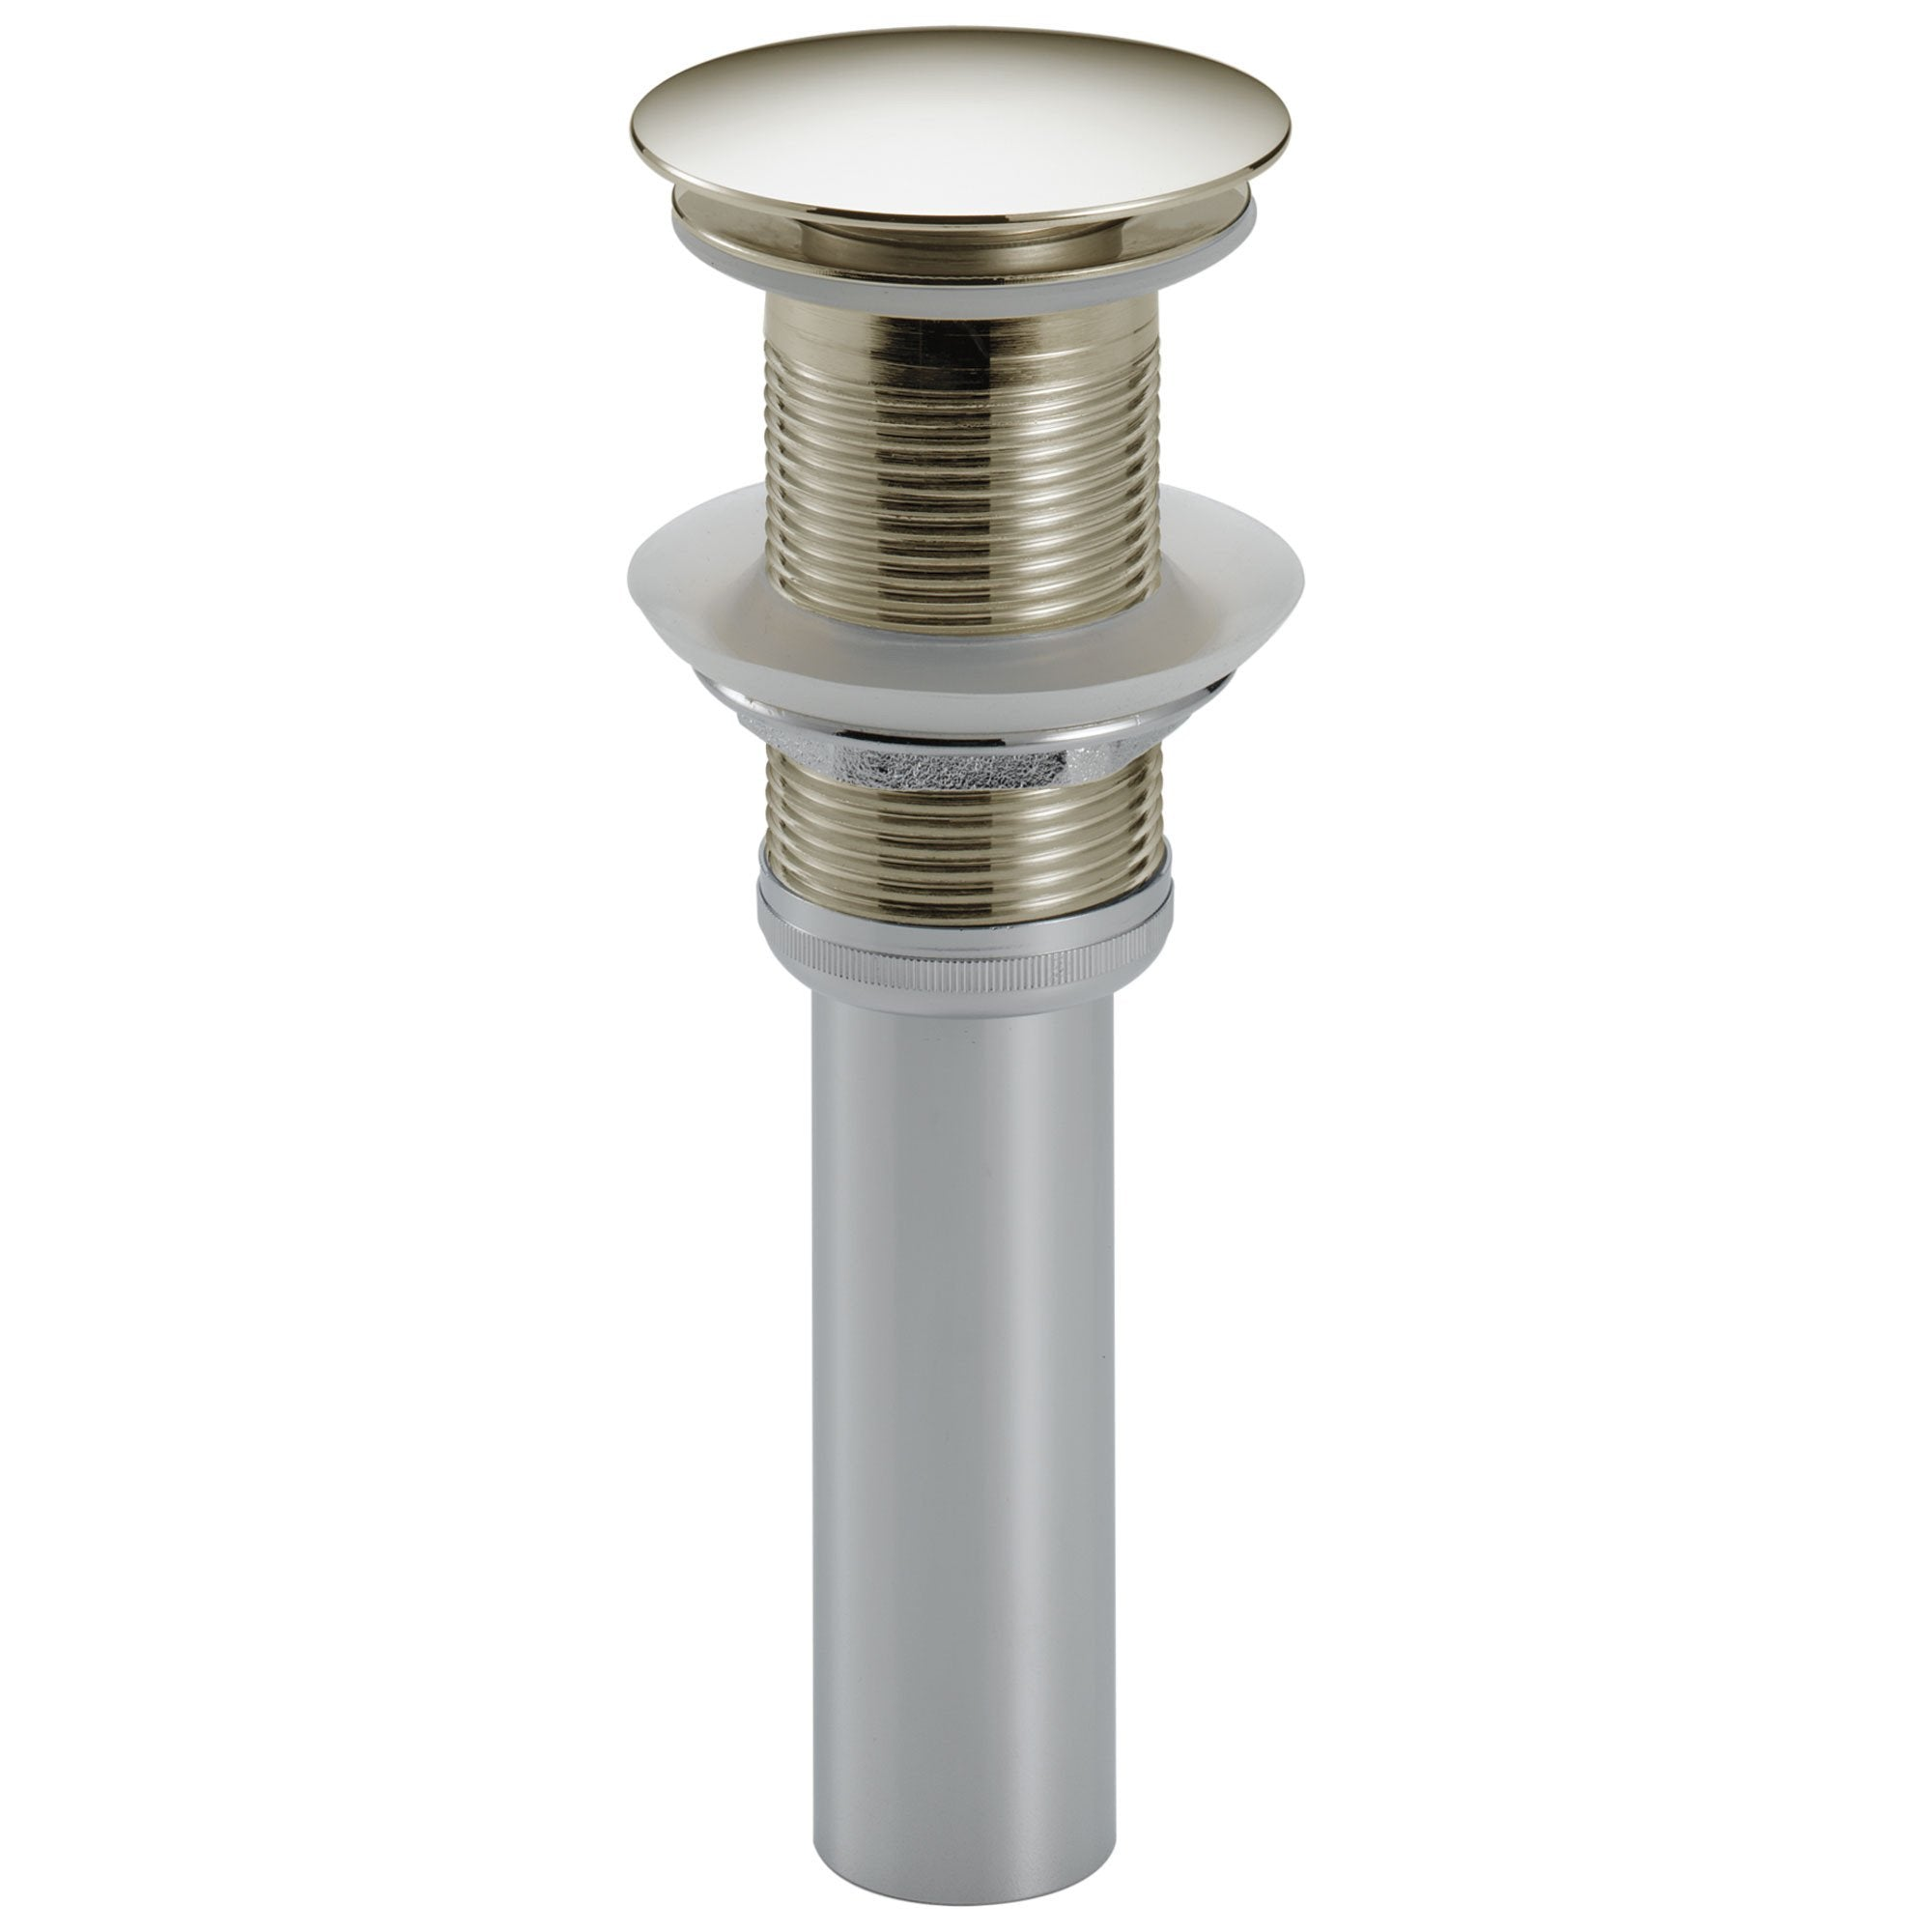 Delta Zura Collection Polished Nickel Finish Push Pop-Up Bathroom Sink Drain without Overflow D72172PN